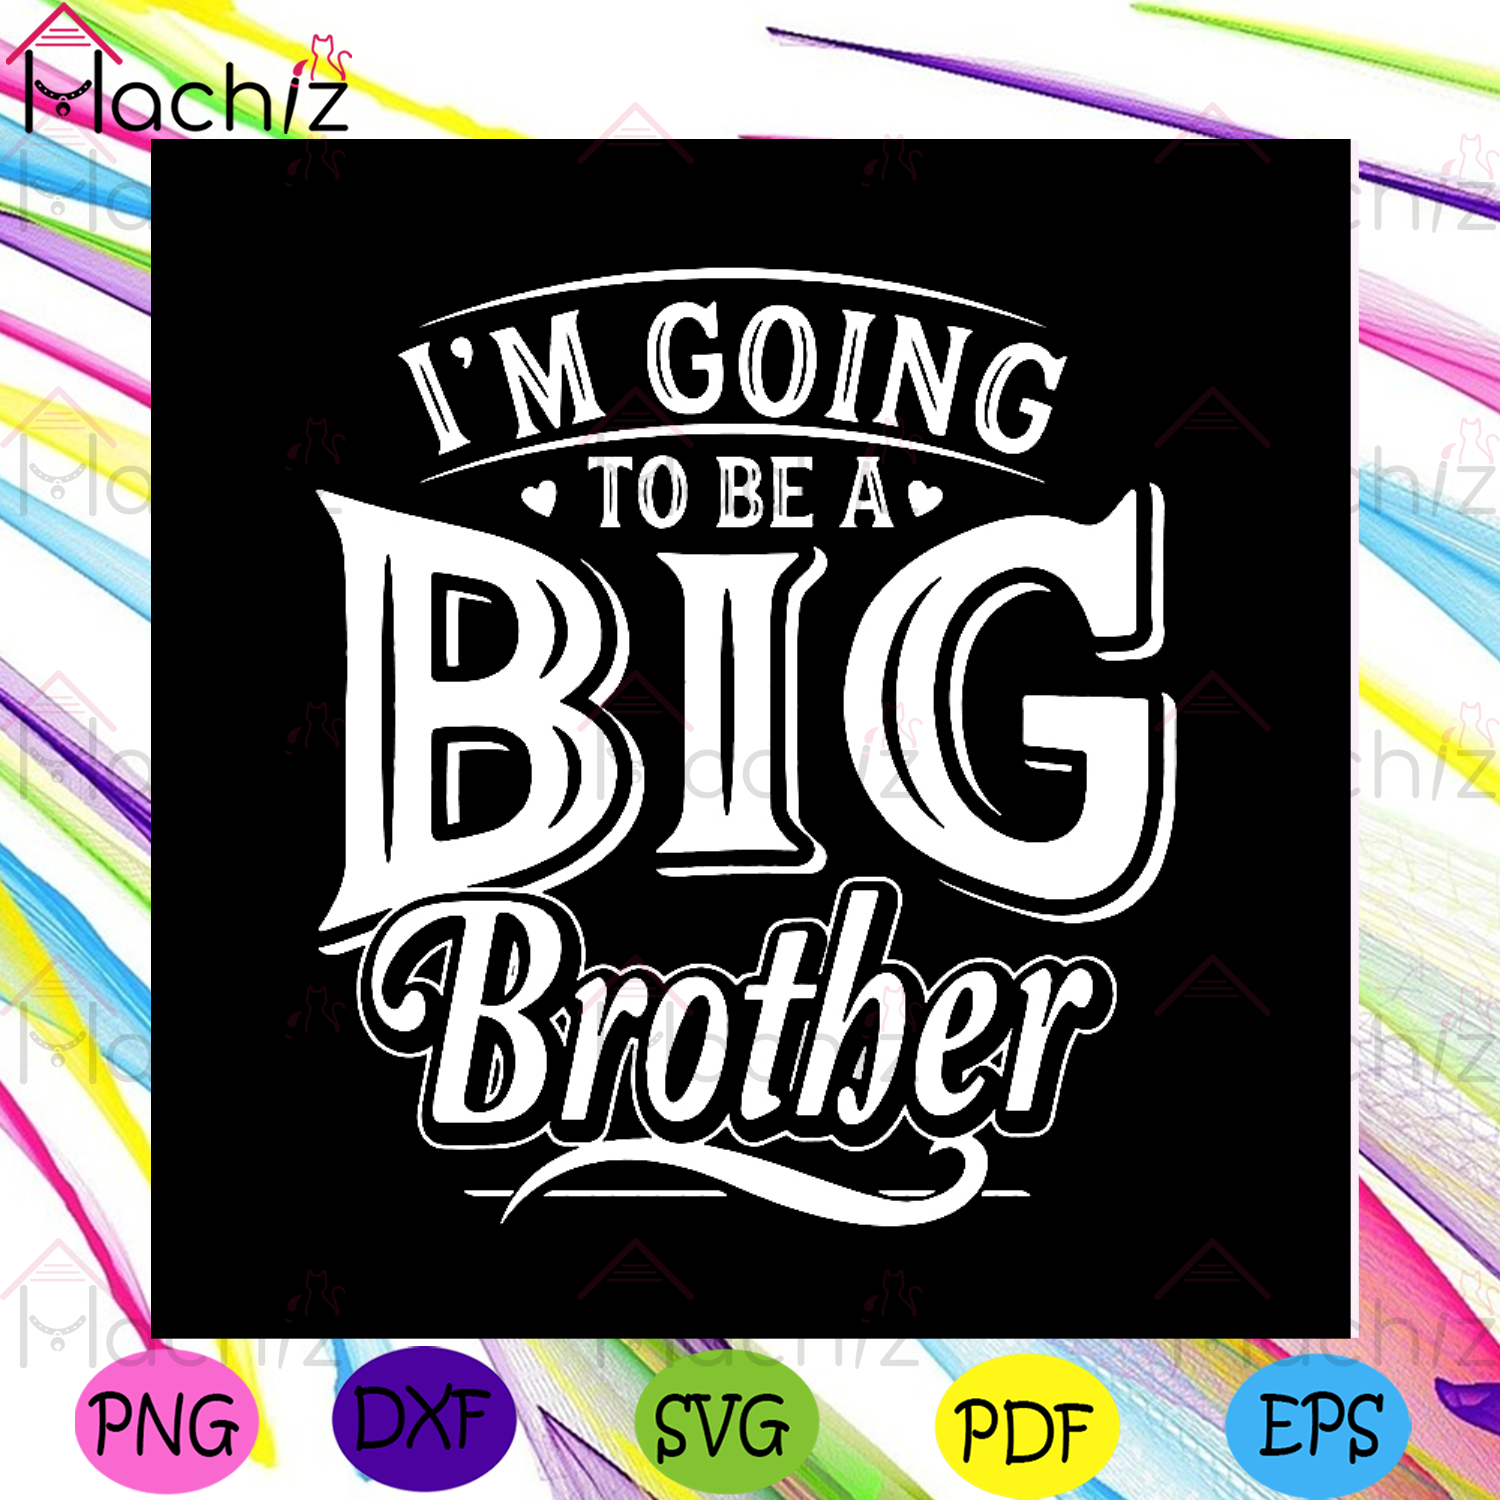 Little Guy Is Being Promoted To Big Brother Svg, Family Svg, Happy Fathers Day Svg, Fathers Day Svg, Daddy Svg, Big Brother Svg, Daddy Day Svg, The Man Svg, Dads Gift Ideas Svg, Big Brother Daddy Svg, Father Gift Svg, Father Svg